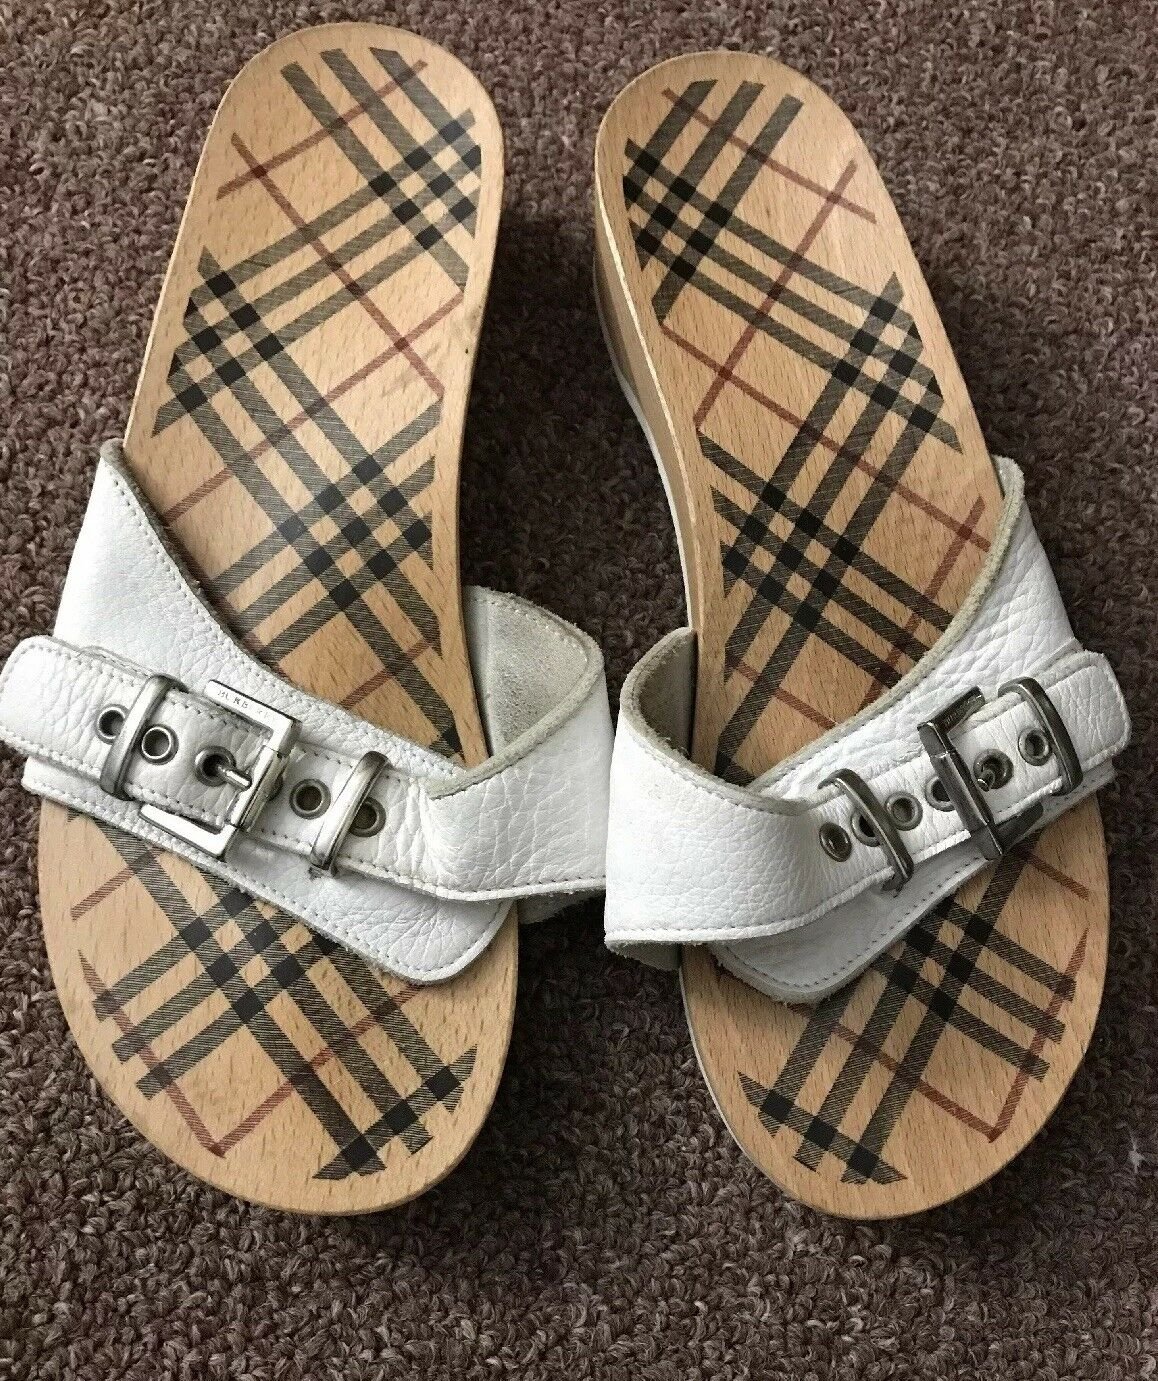 BURBERRY WOOD AND LEATHER SANDAL Donna.SIZE  8 Preowned 100% Authentic